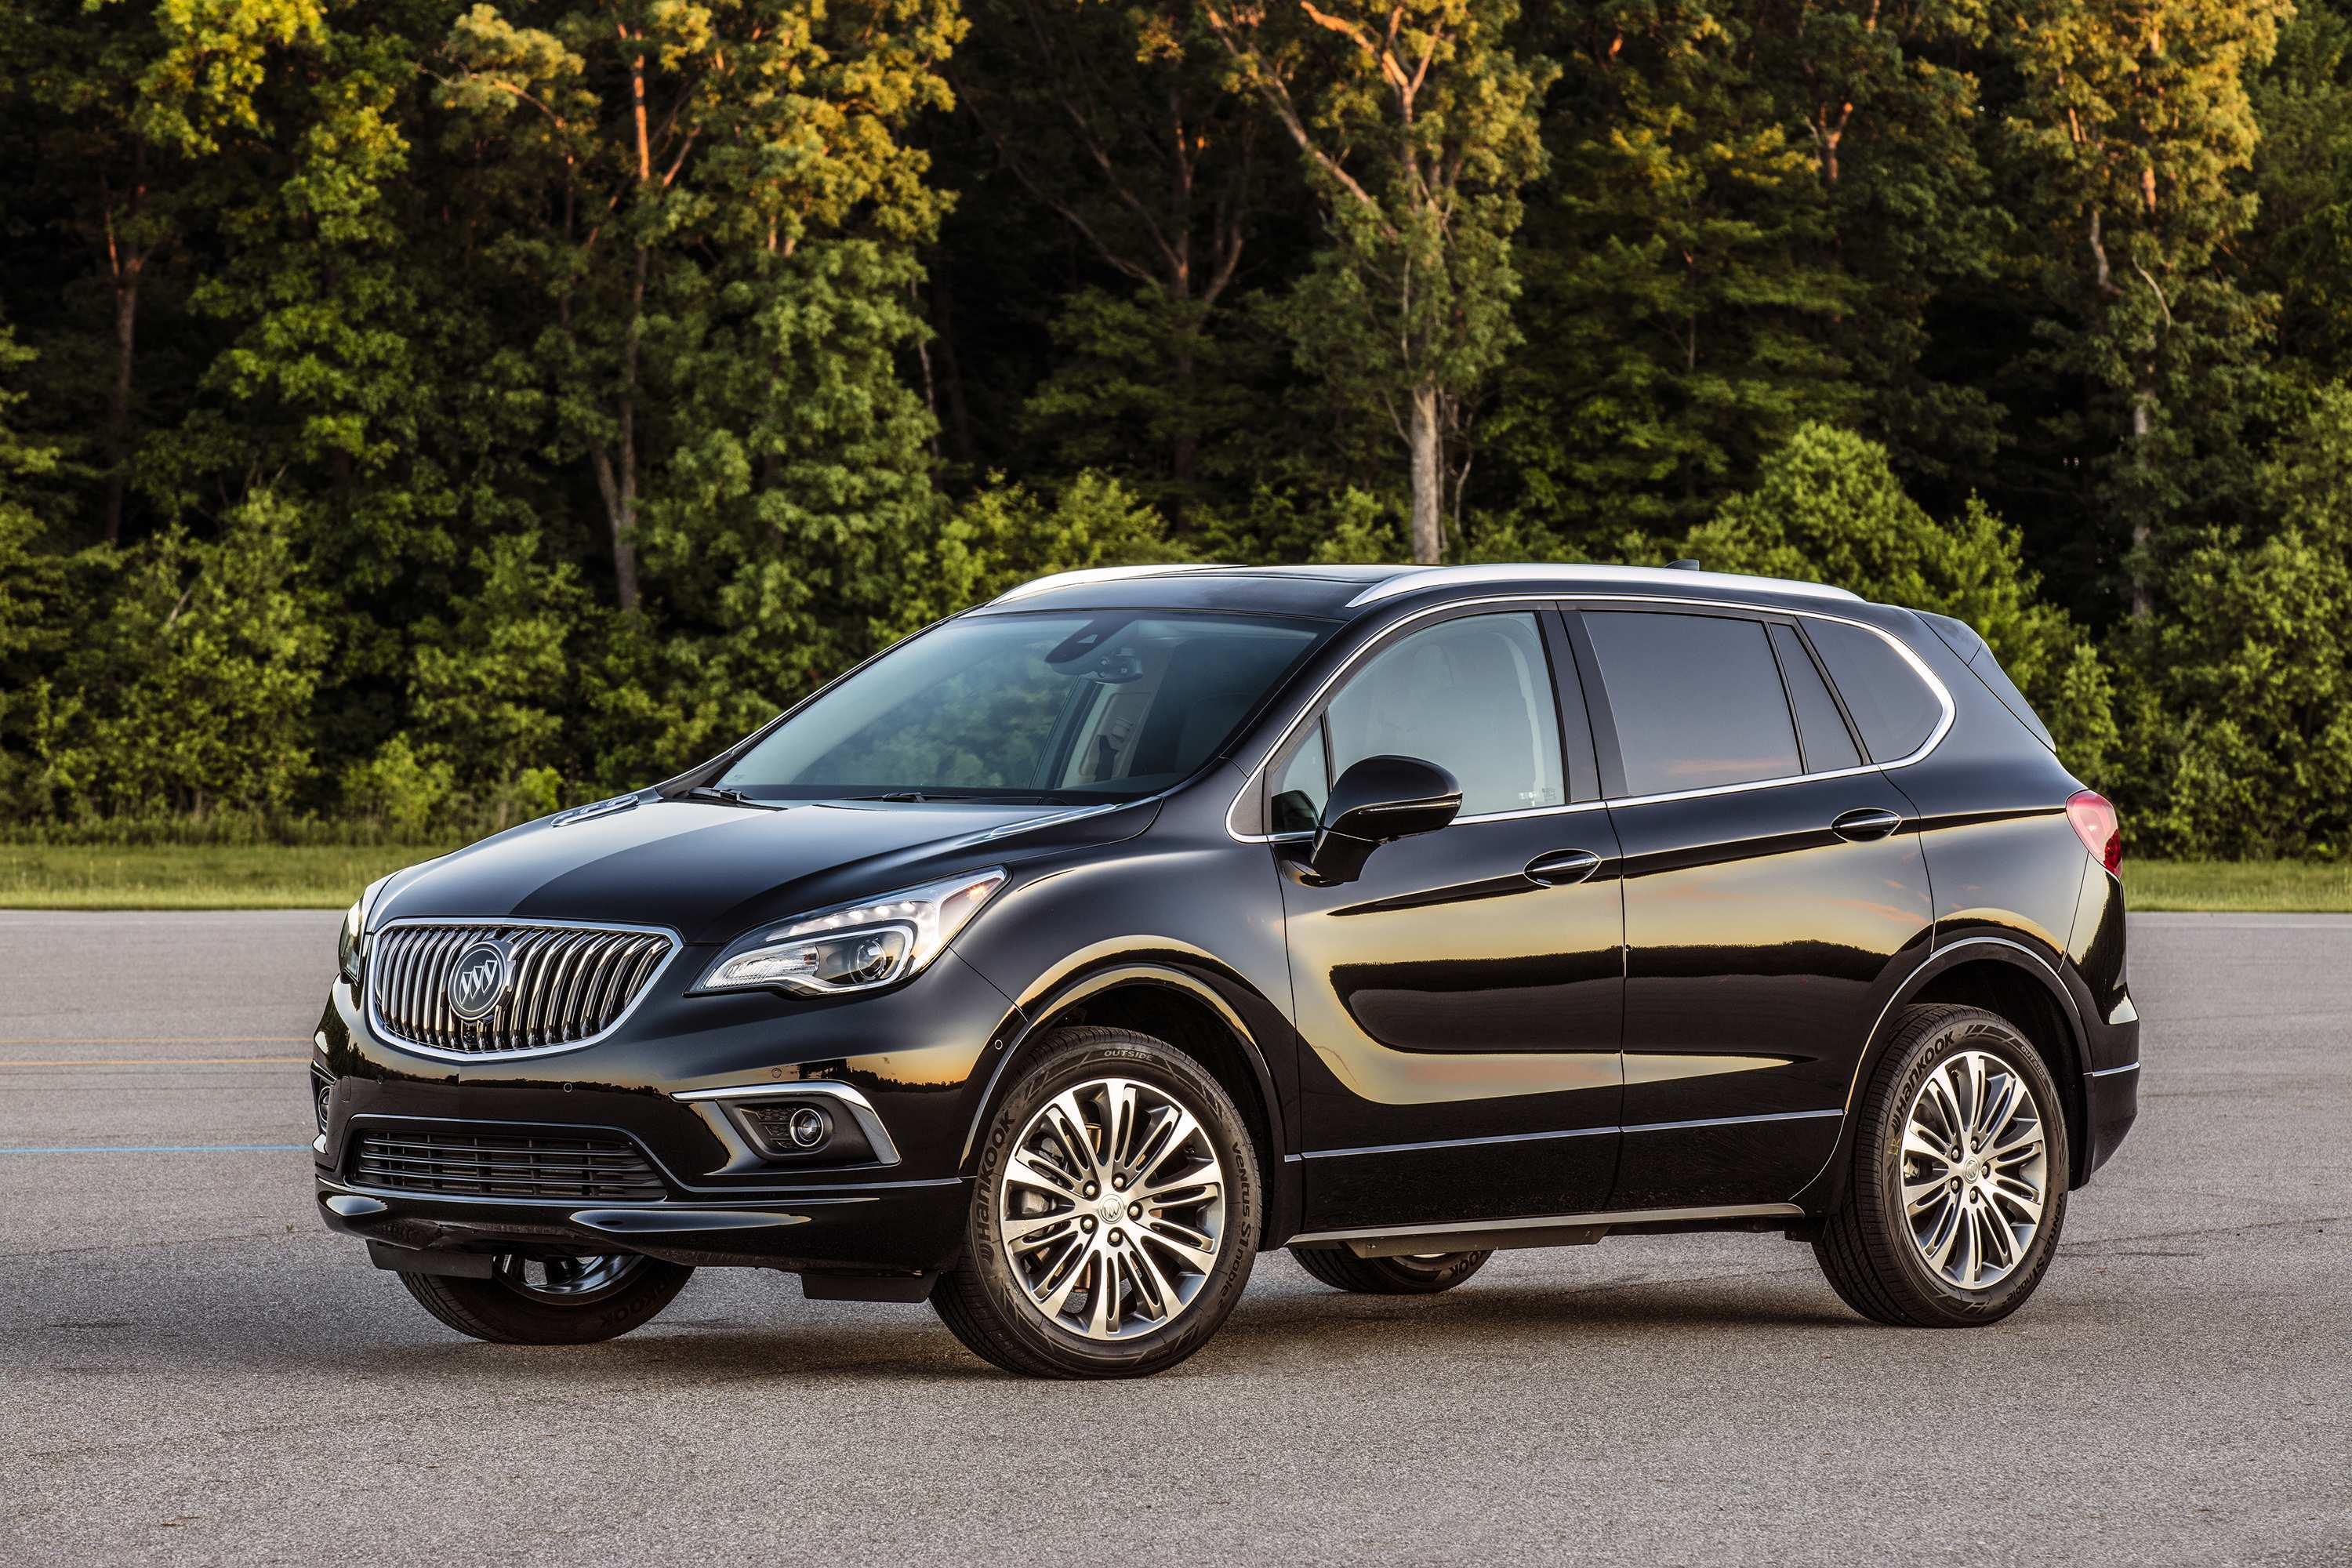 22 Great 2019 Buick Envision Exterior for 2019 Buick Envision